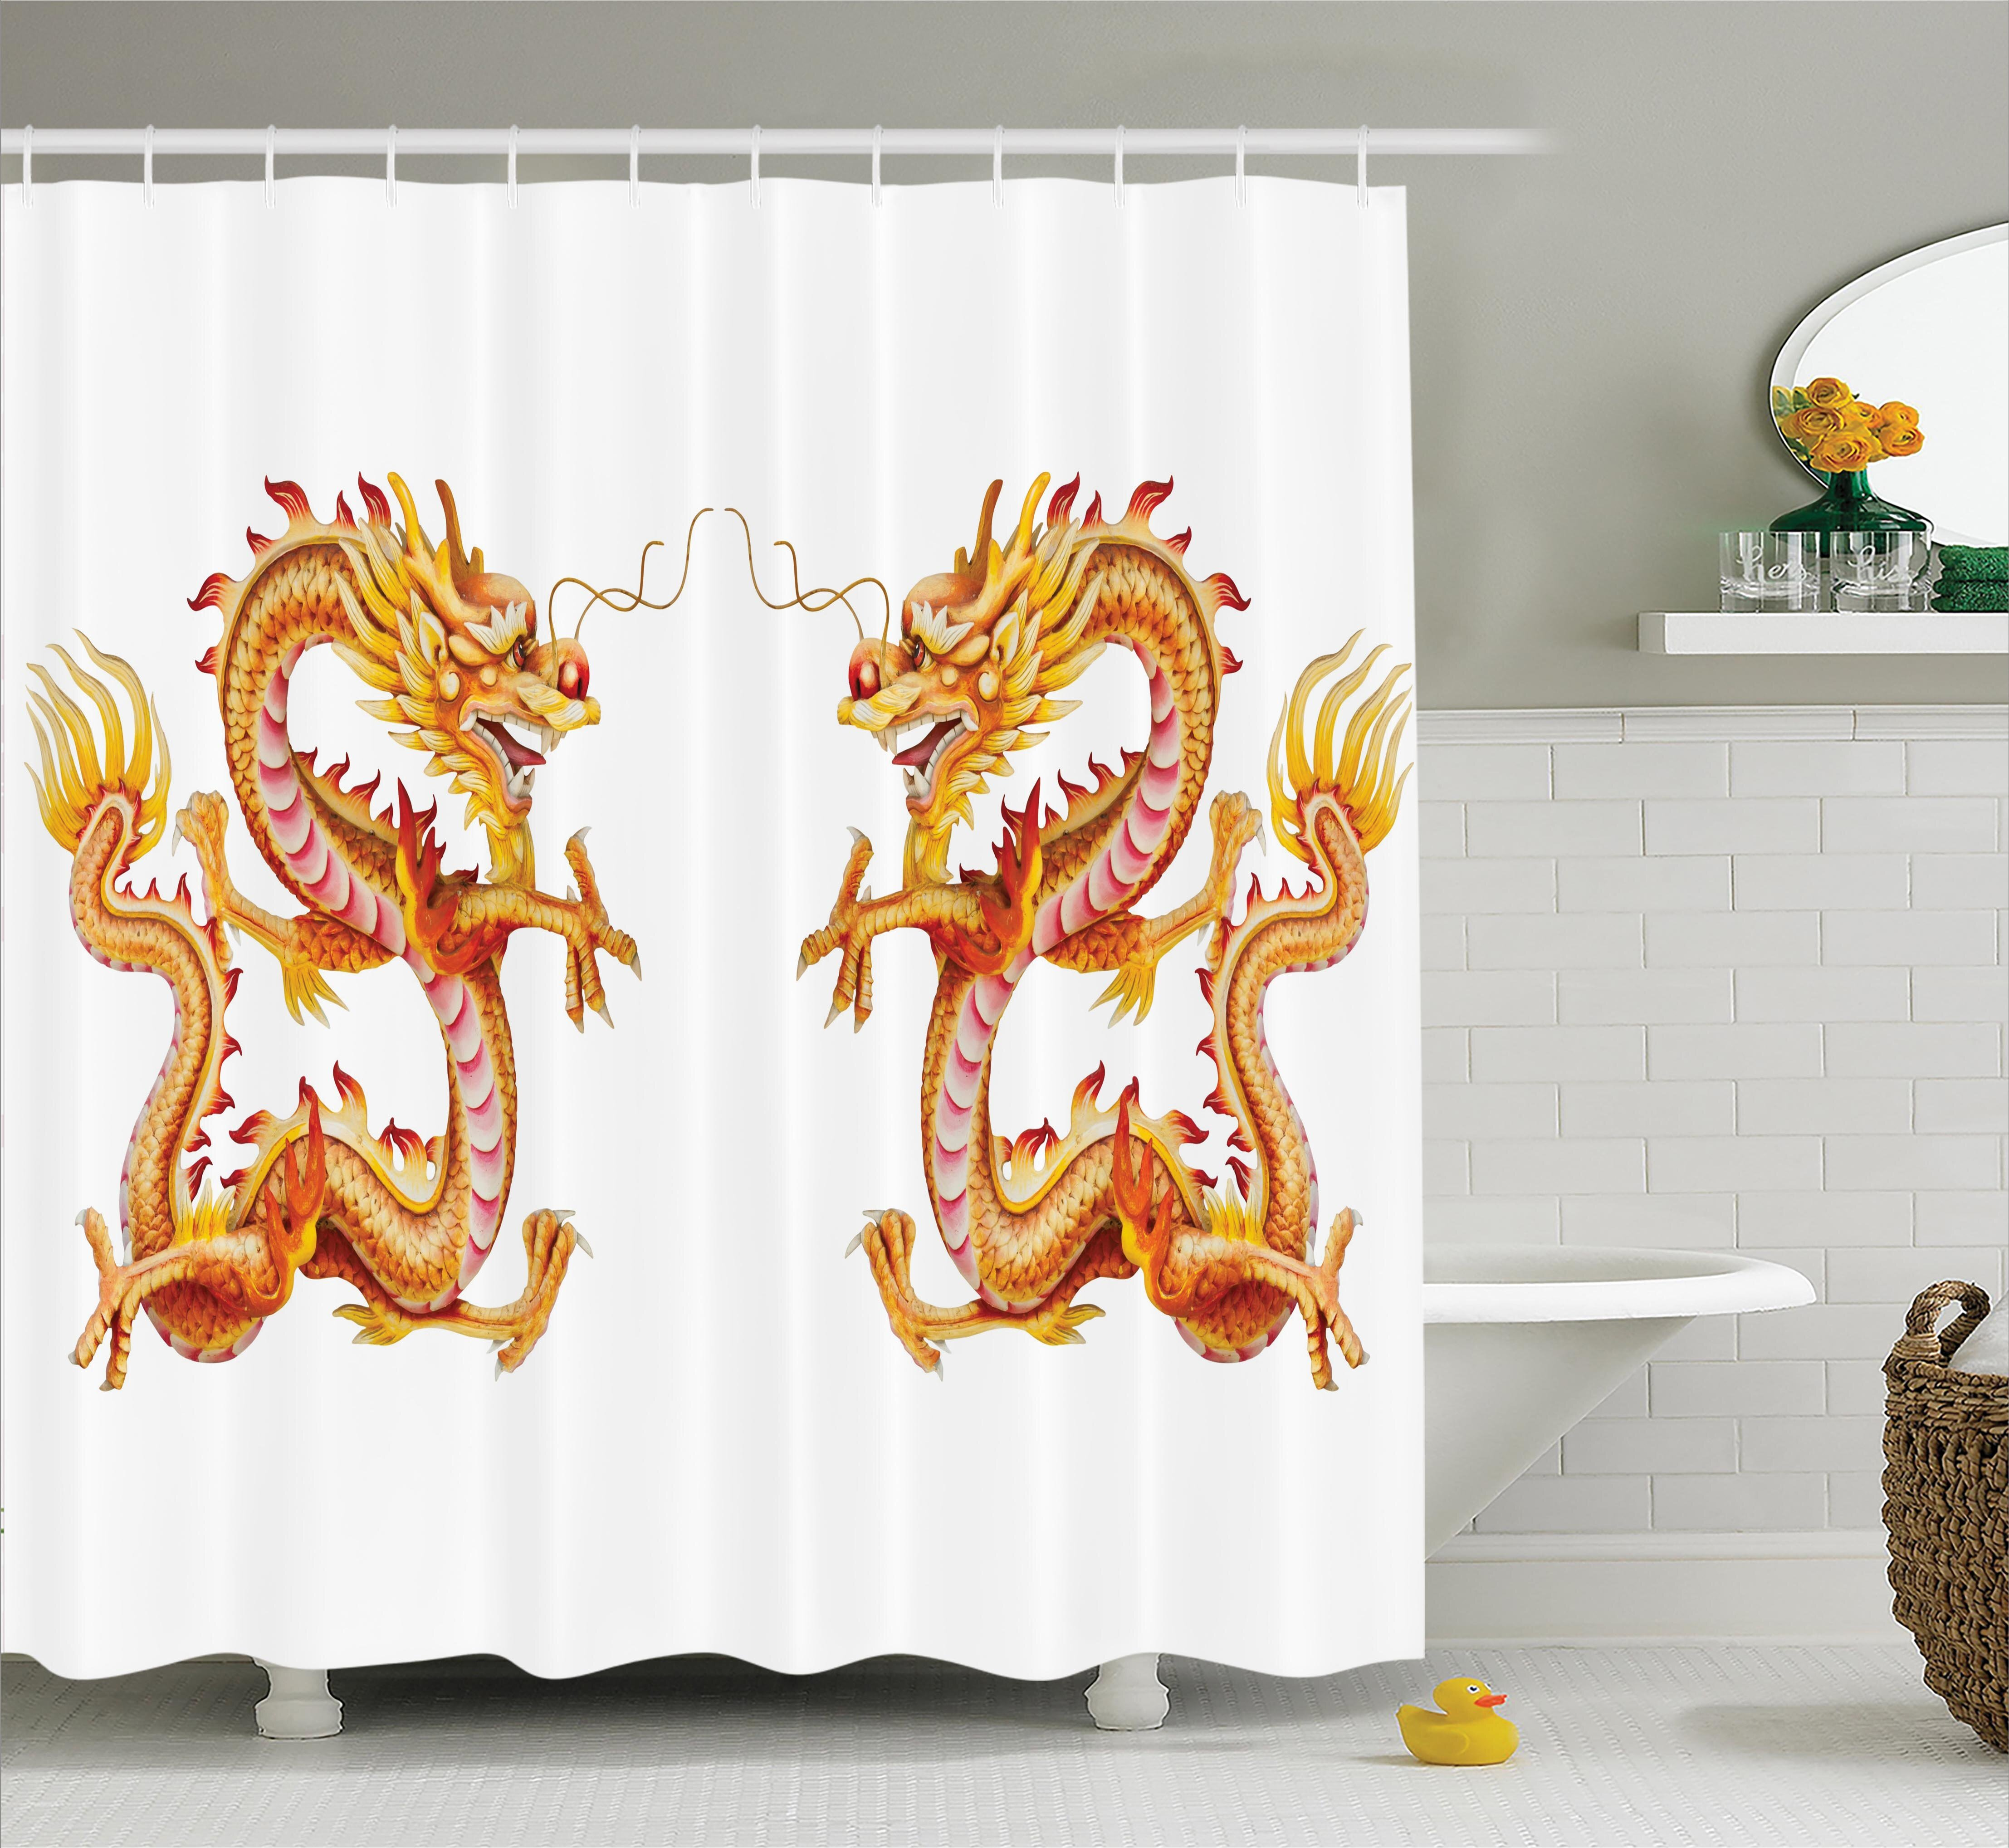 Ebern Designs Yolanda Dragon Twin Fire Zodiac Statues Traditional Asian Art Chinese Themed Picture Print Shower Curtain